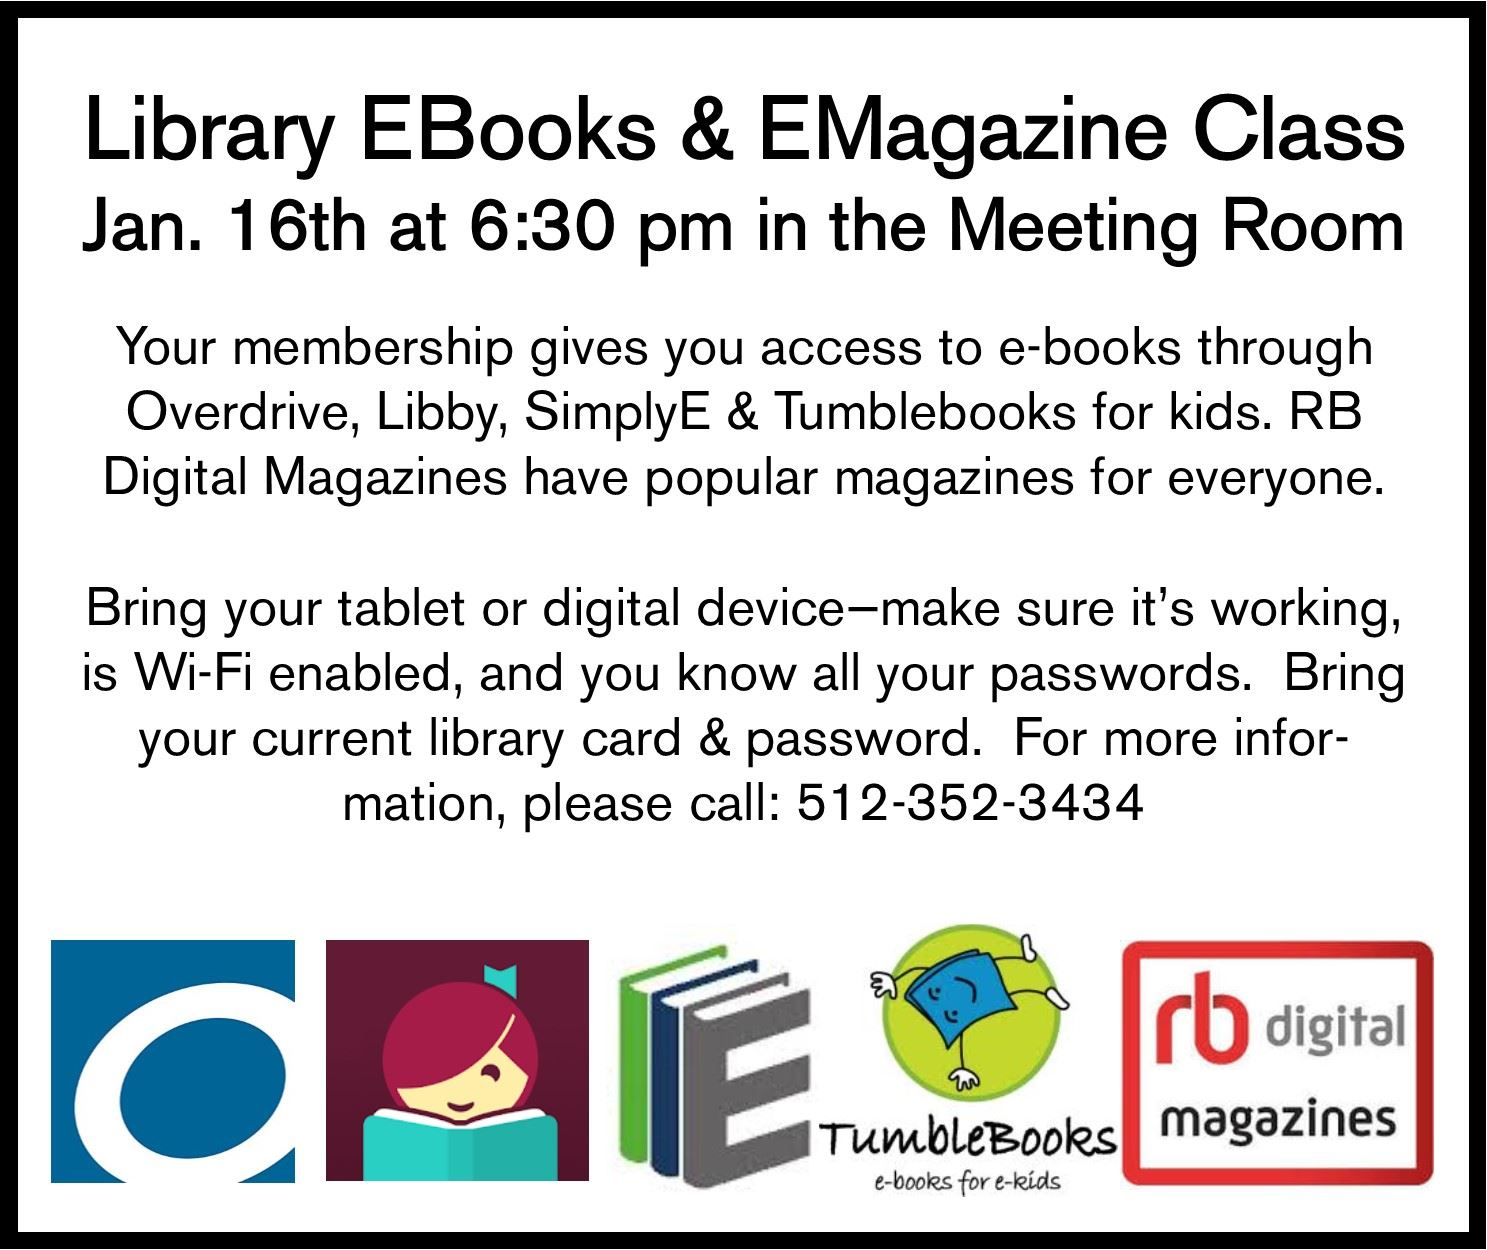 EBook EMagazine Class Jan 16 2020